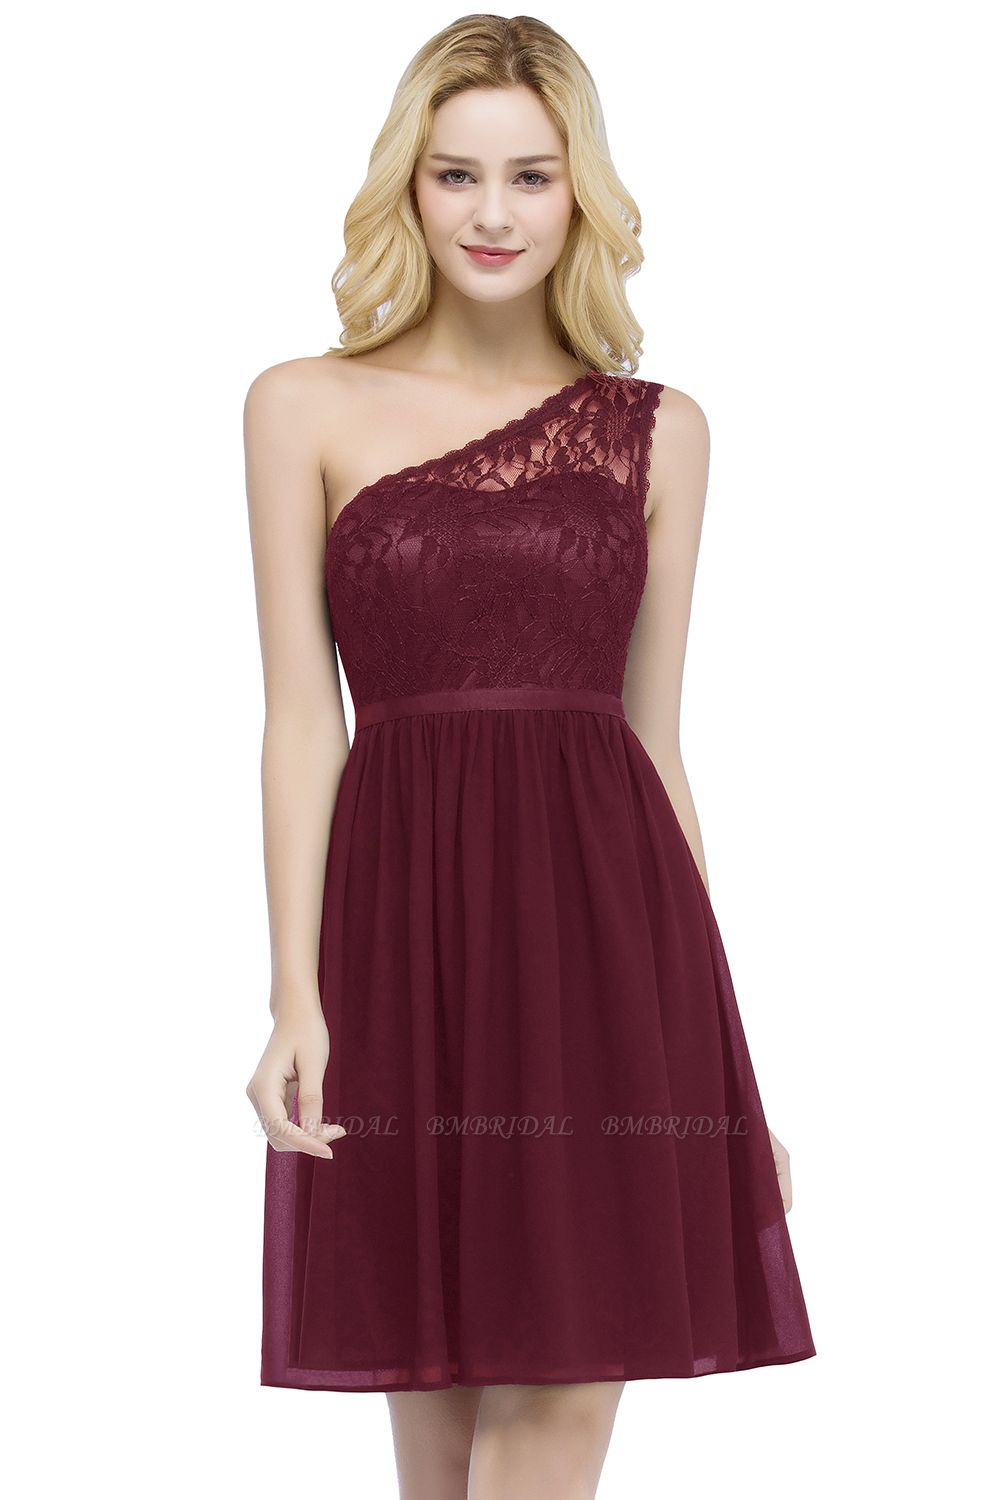 BMbridal Affordable A-line Chiffon One-shoulder Lace Top Short Bridesmaid Dresses In Stock